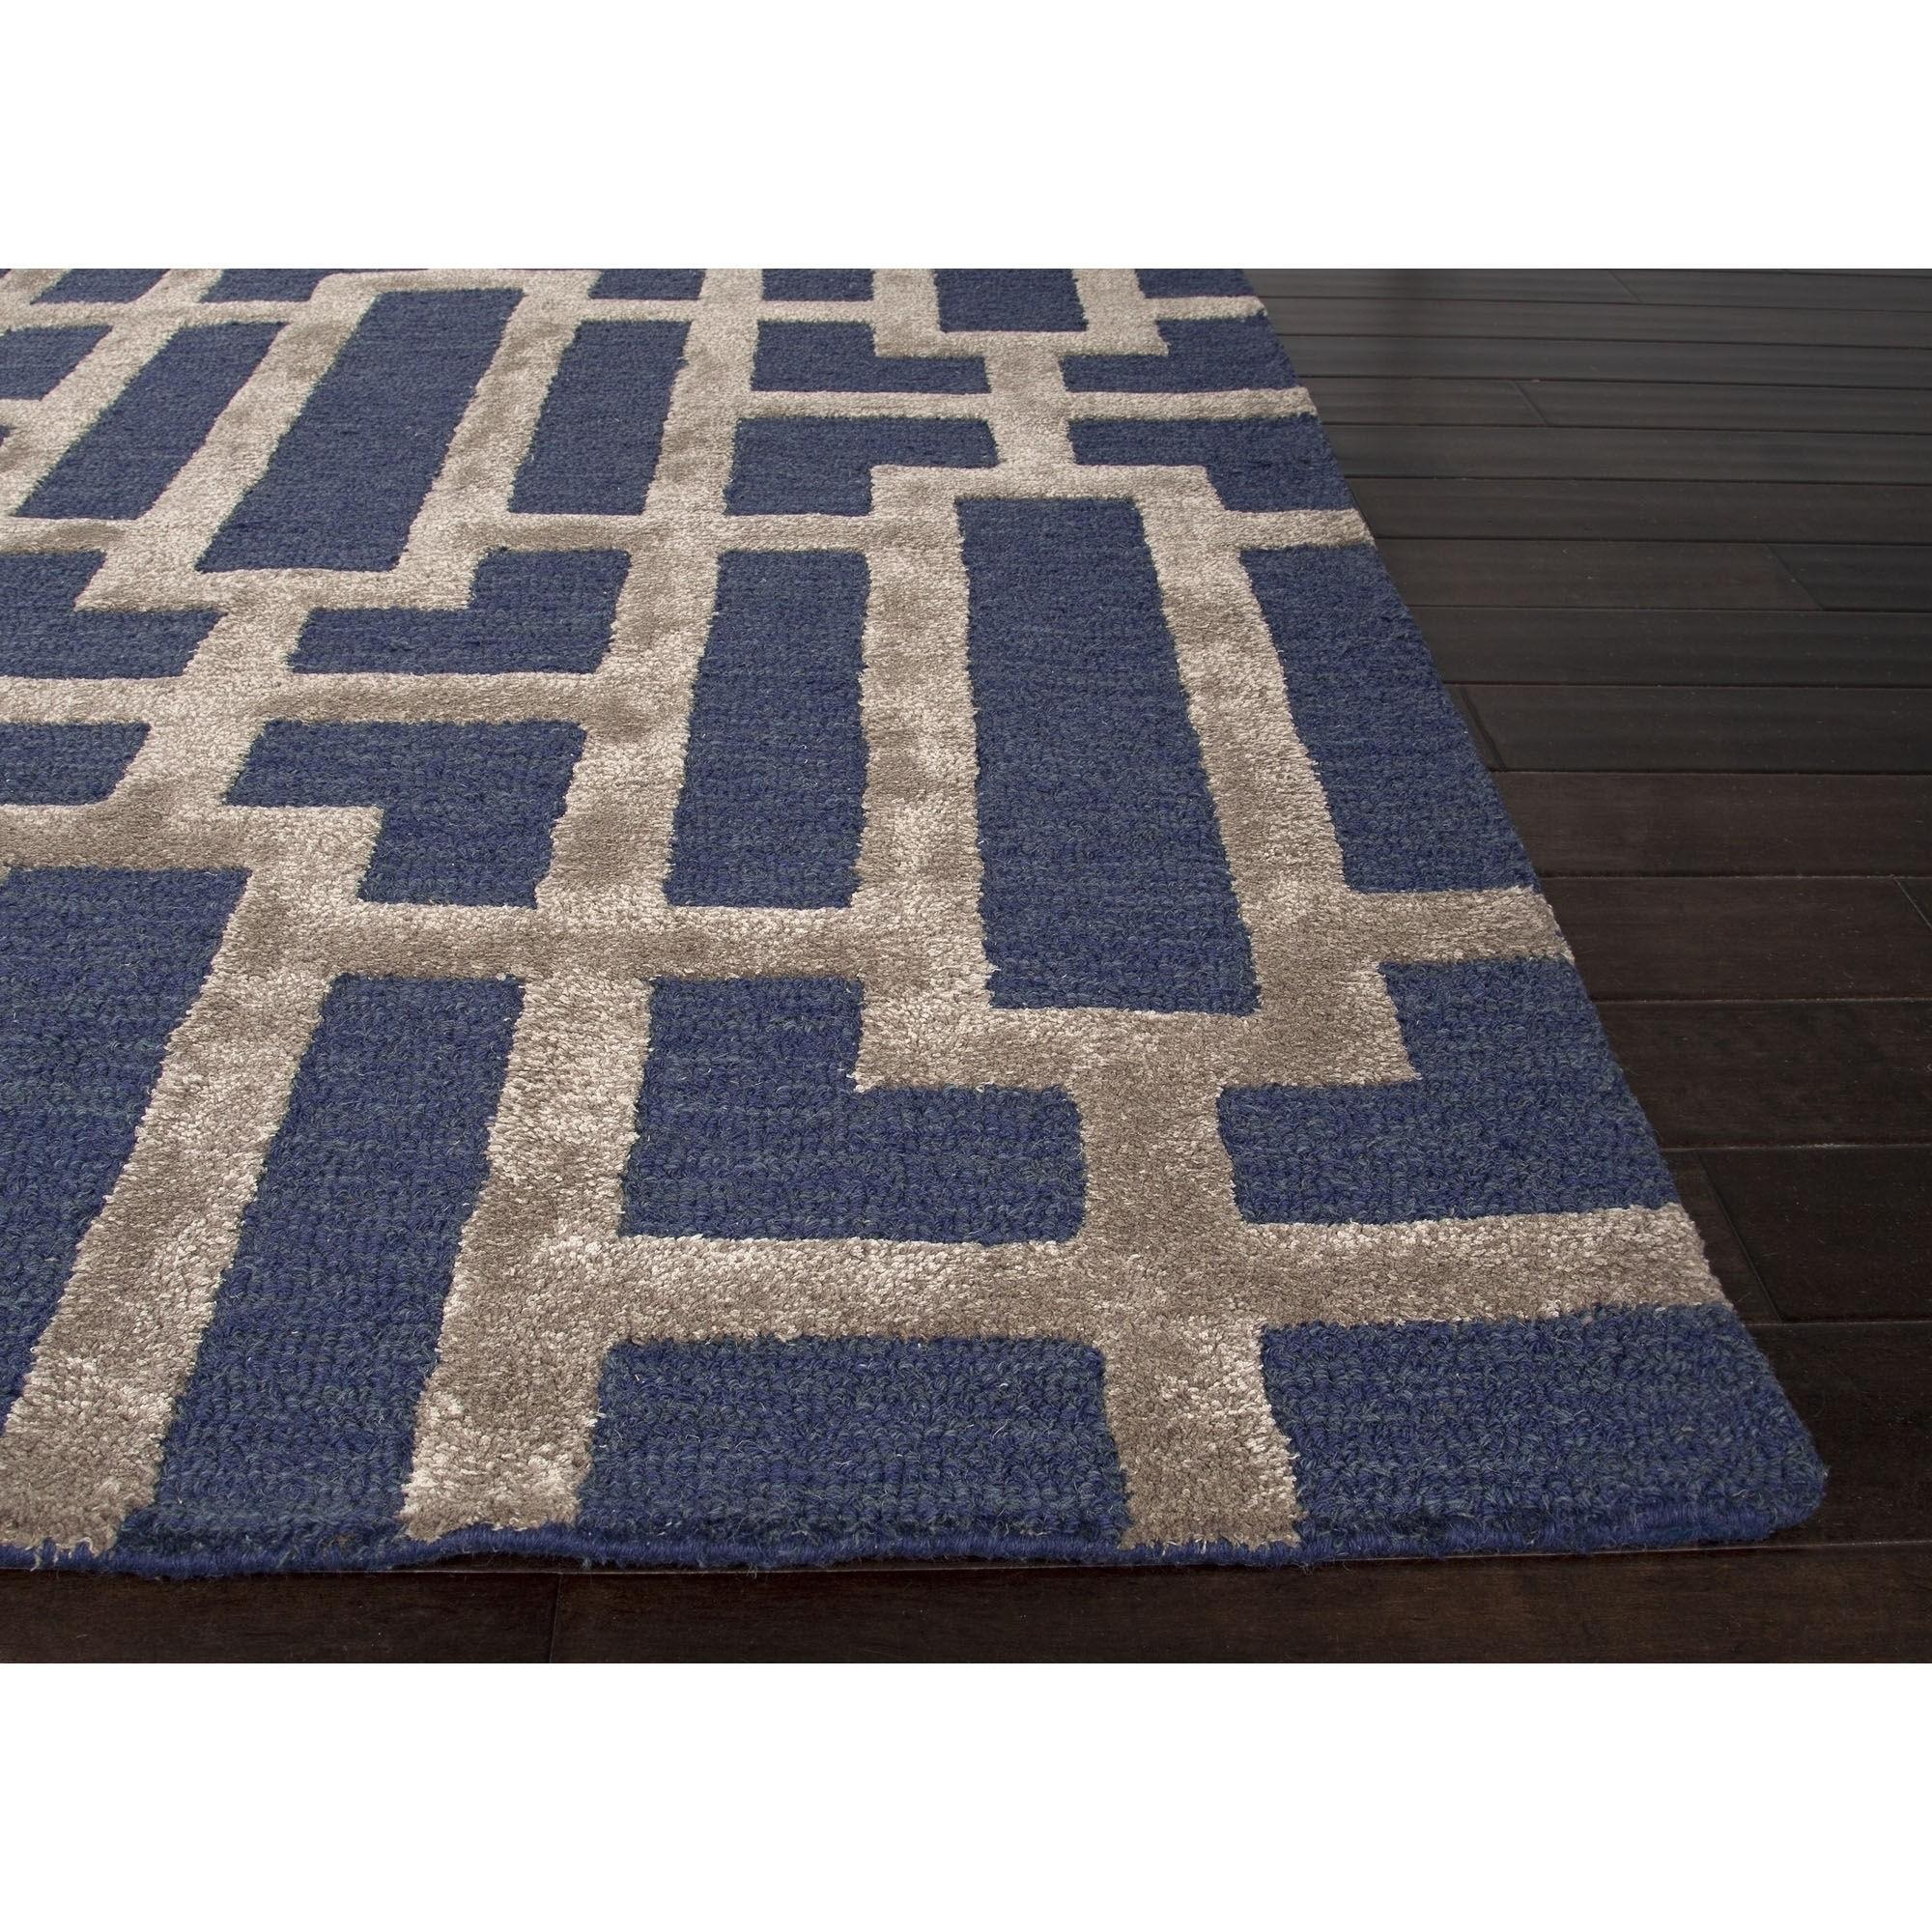 Decor Navy Blue Tan Area Rug Flooring Decoration